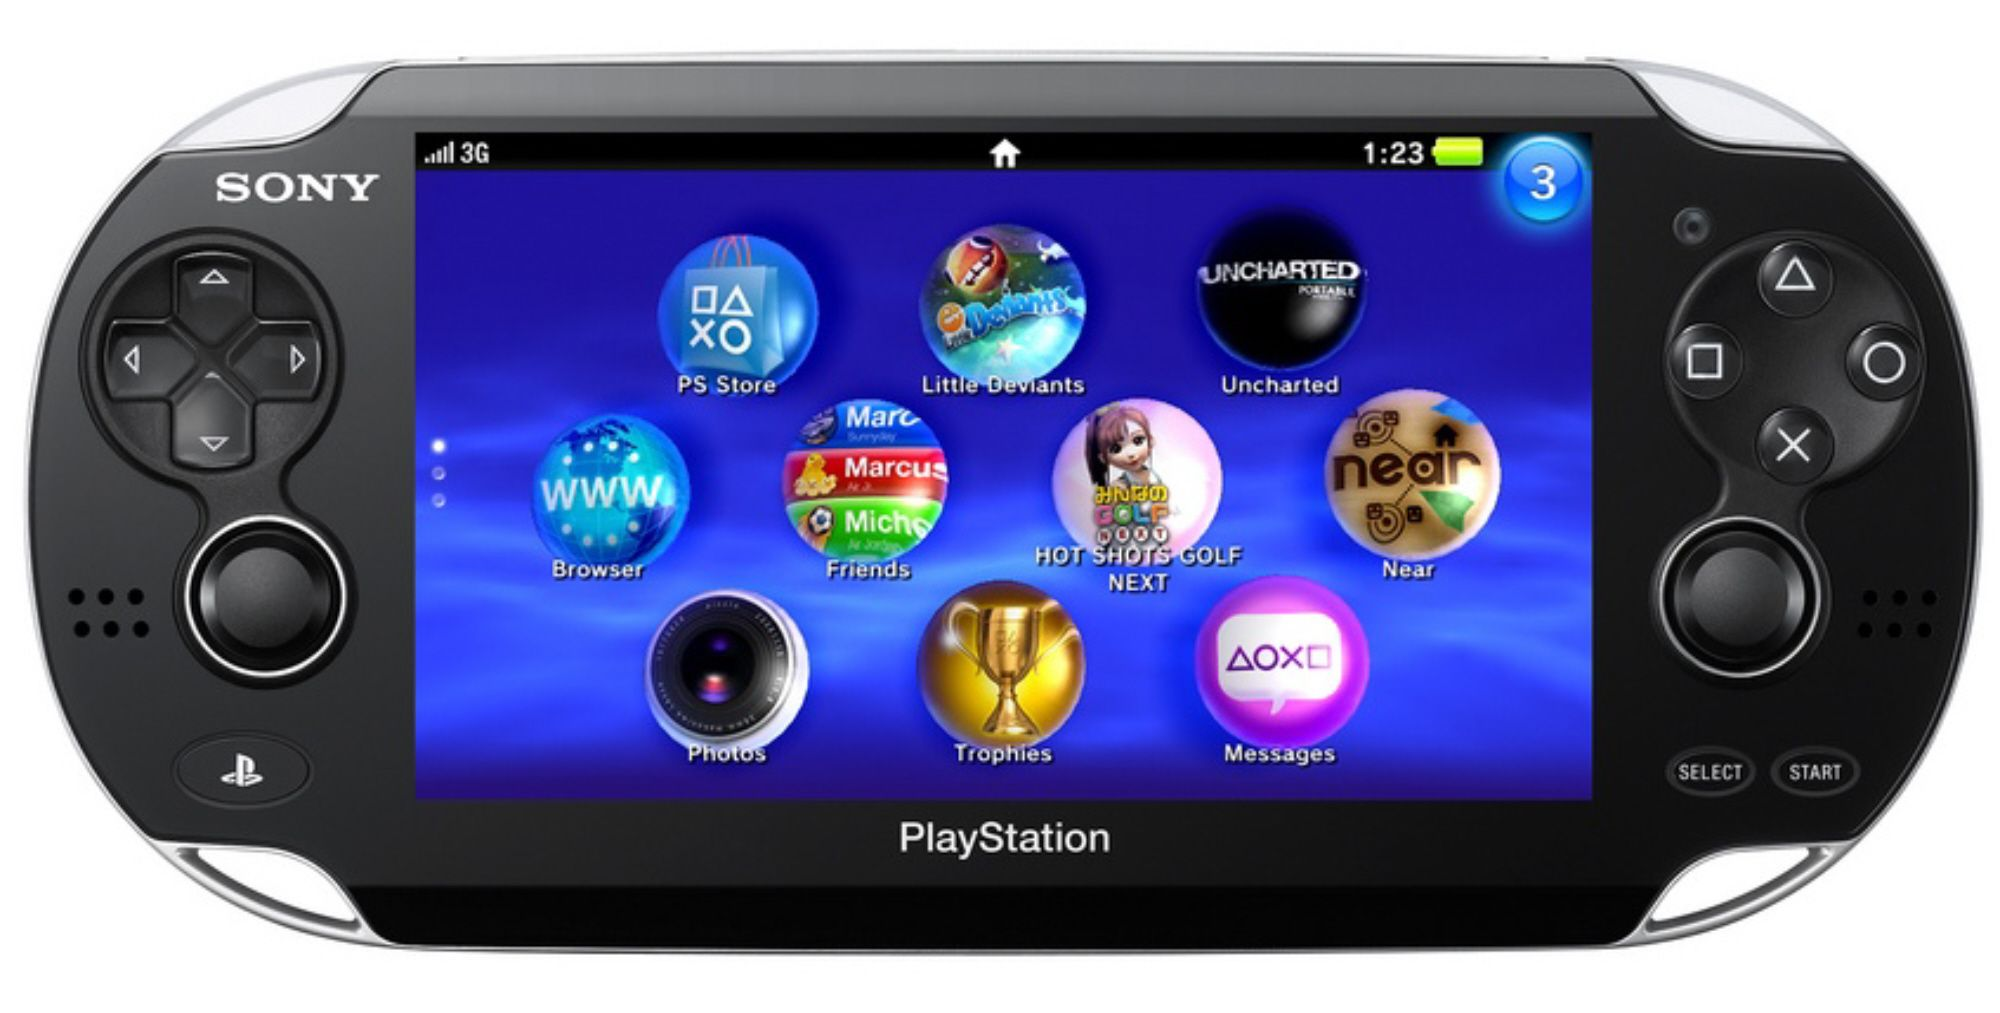 Sony agrees to partial refunds for Play Station Vita buyers | Playstation,  Sony playstation, Sony